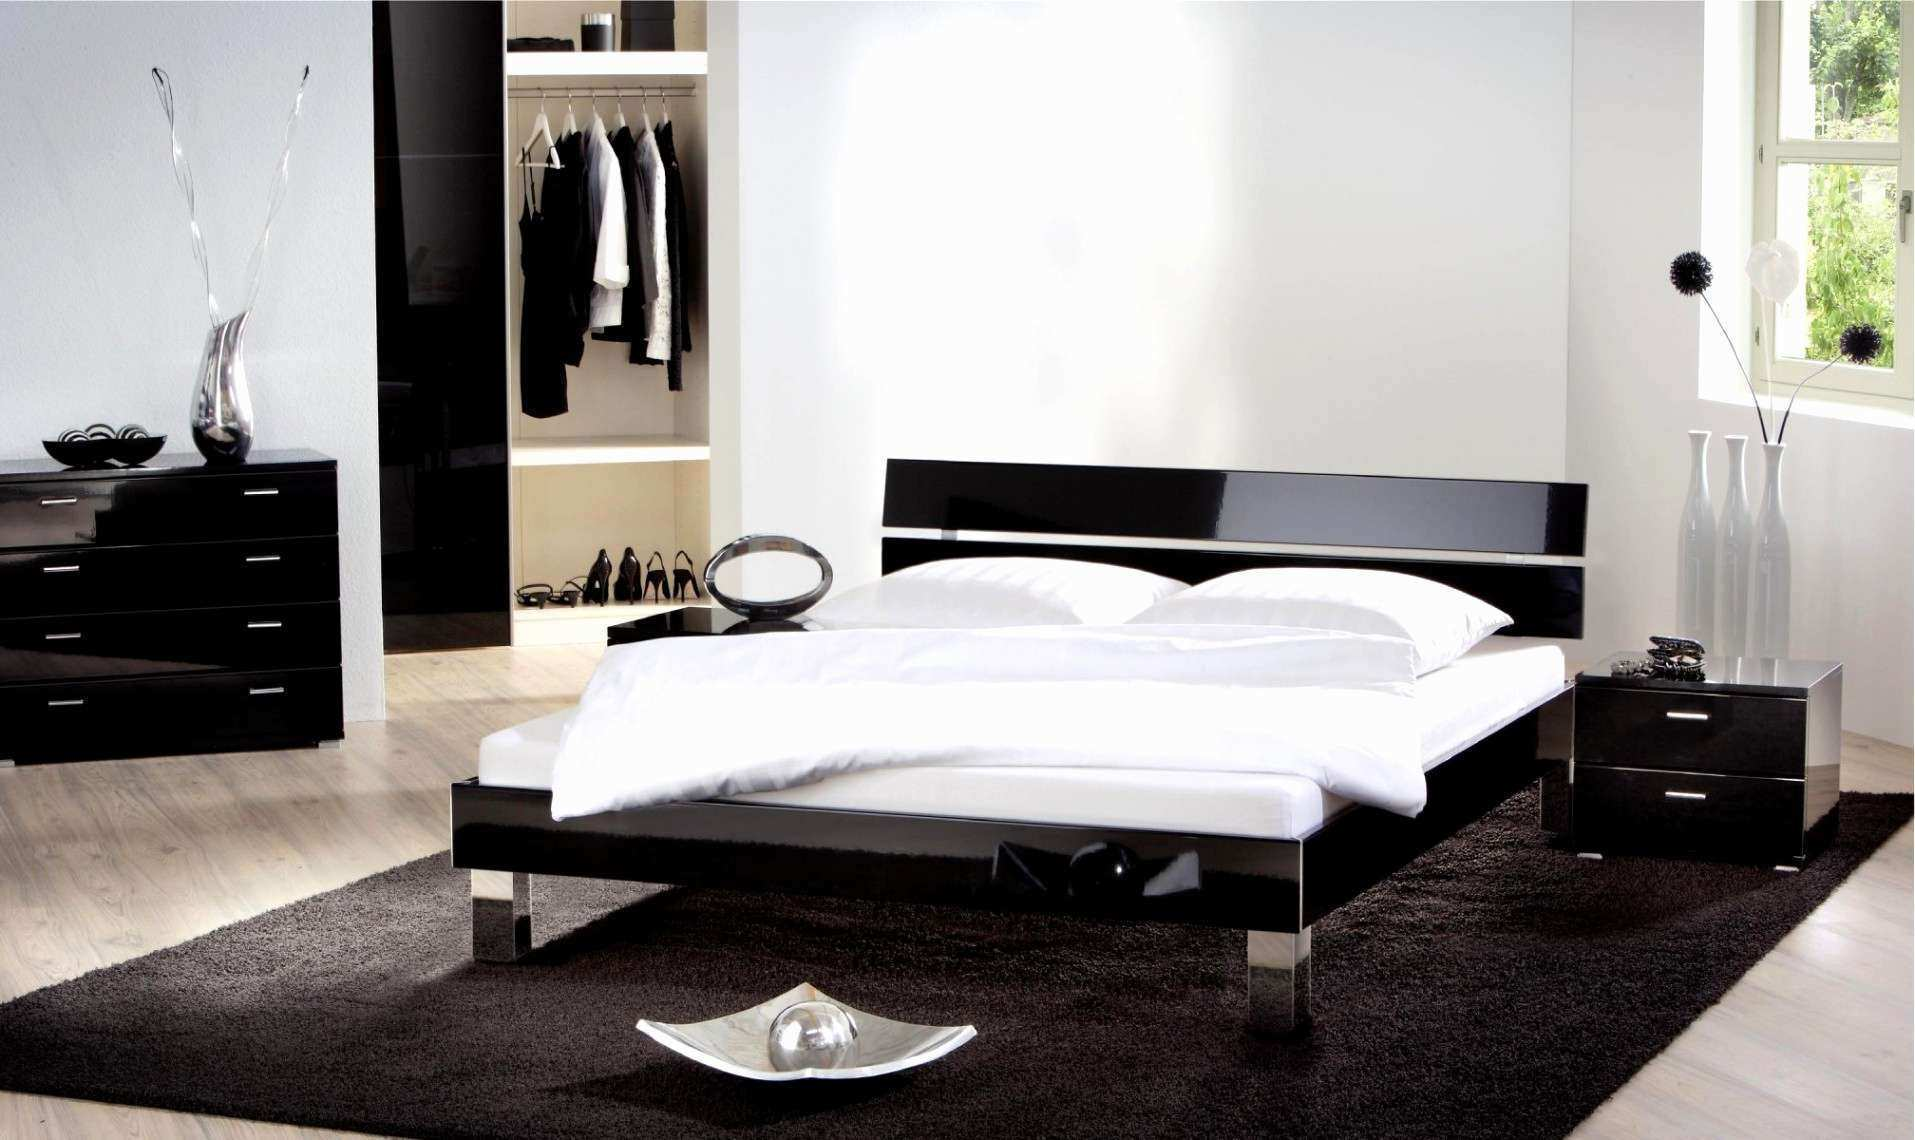 Ikea Bedroom Furniture Luxury Ideen Ikea Regale Schlafzimmer Und Luxus 39  Kollektion Regal 25 Cm